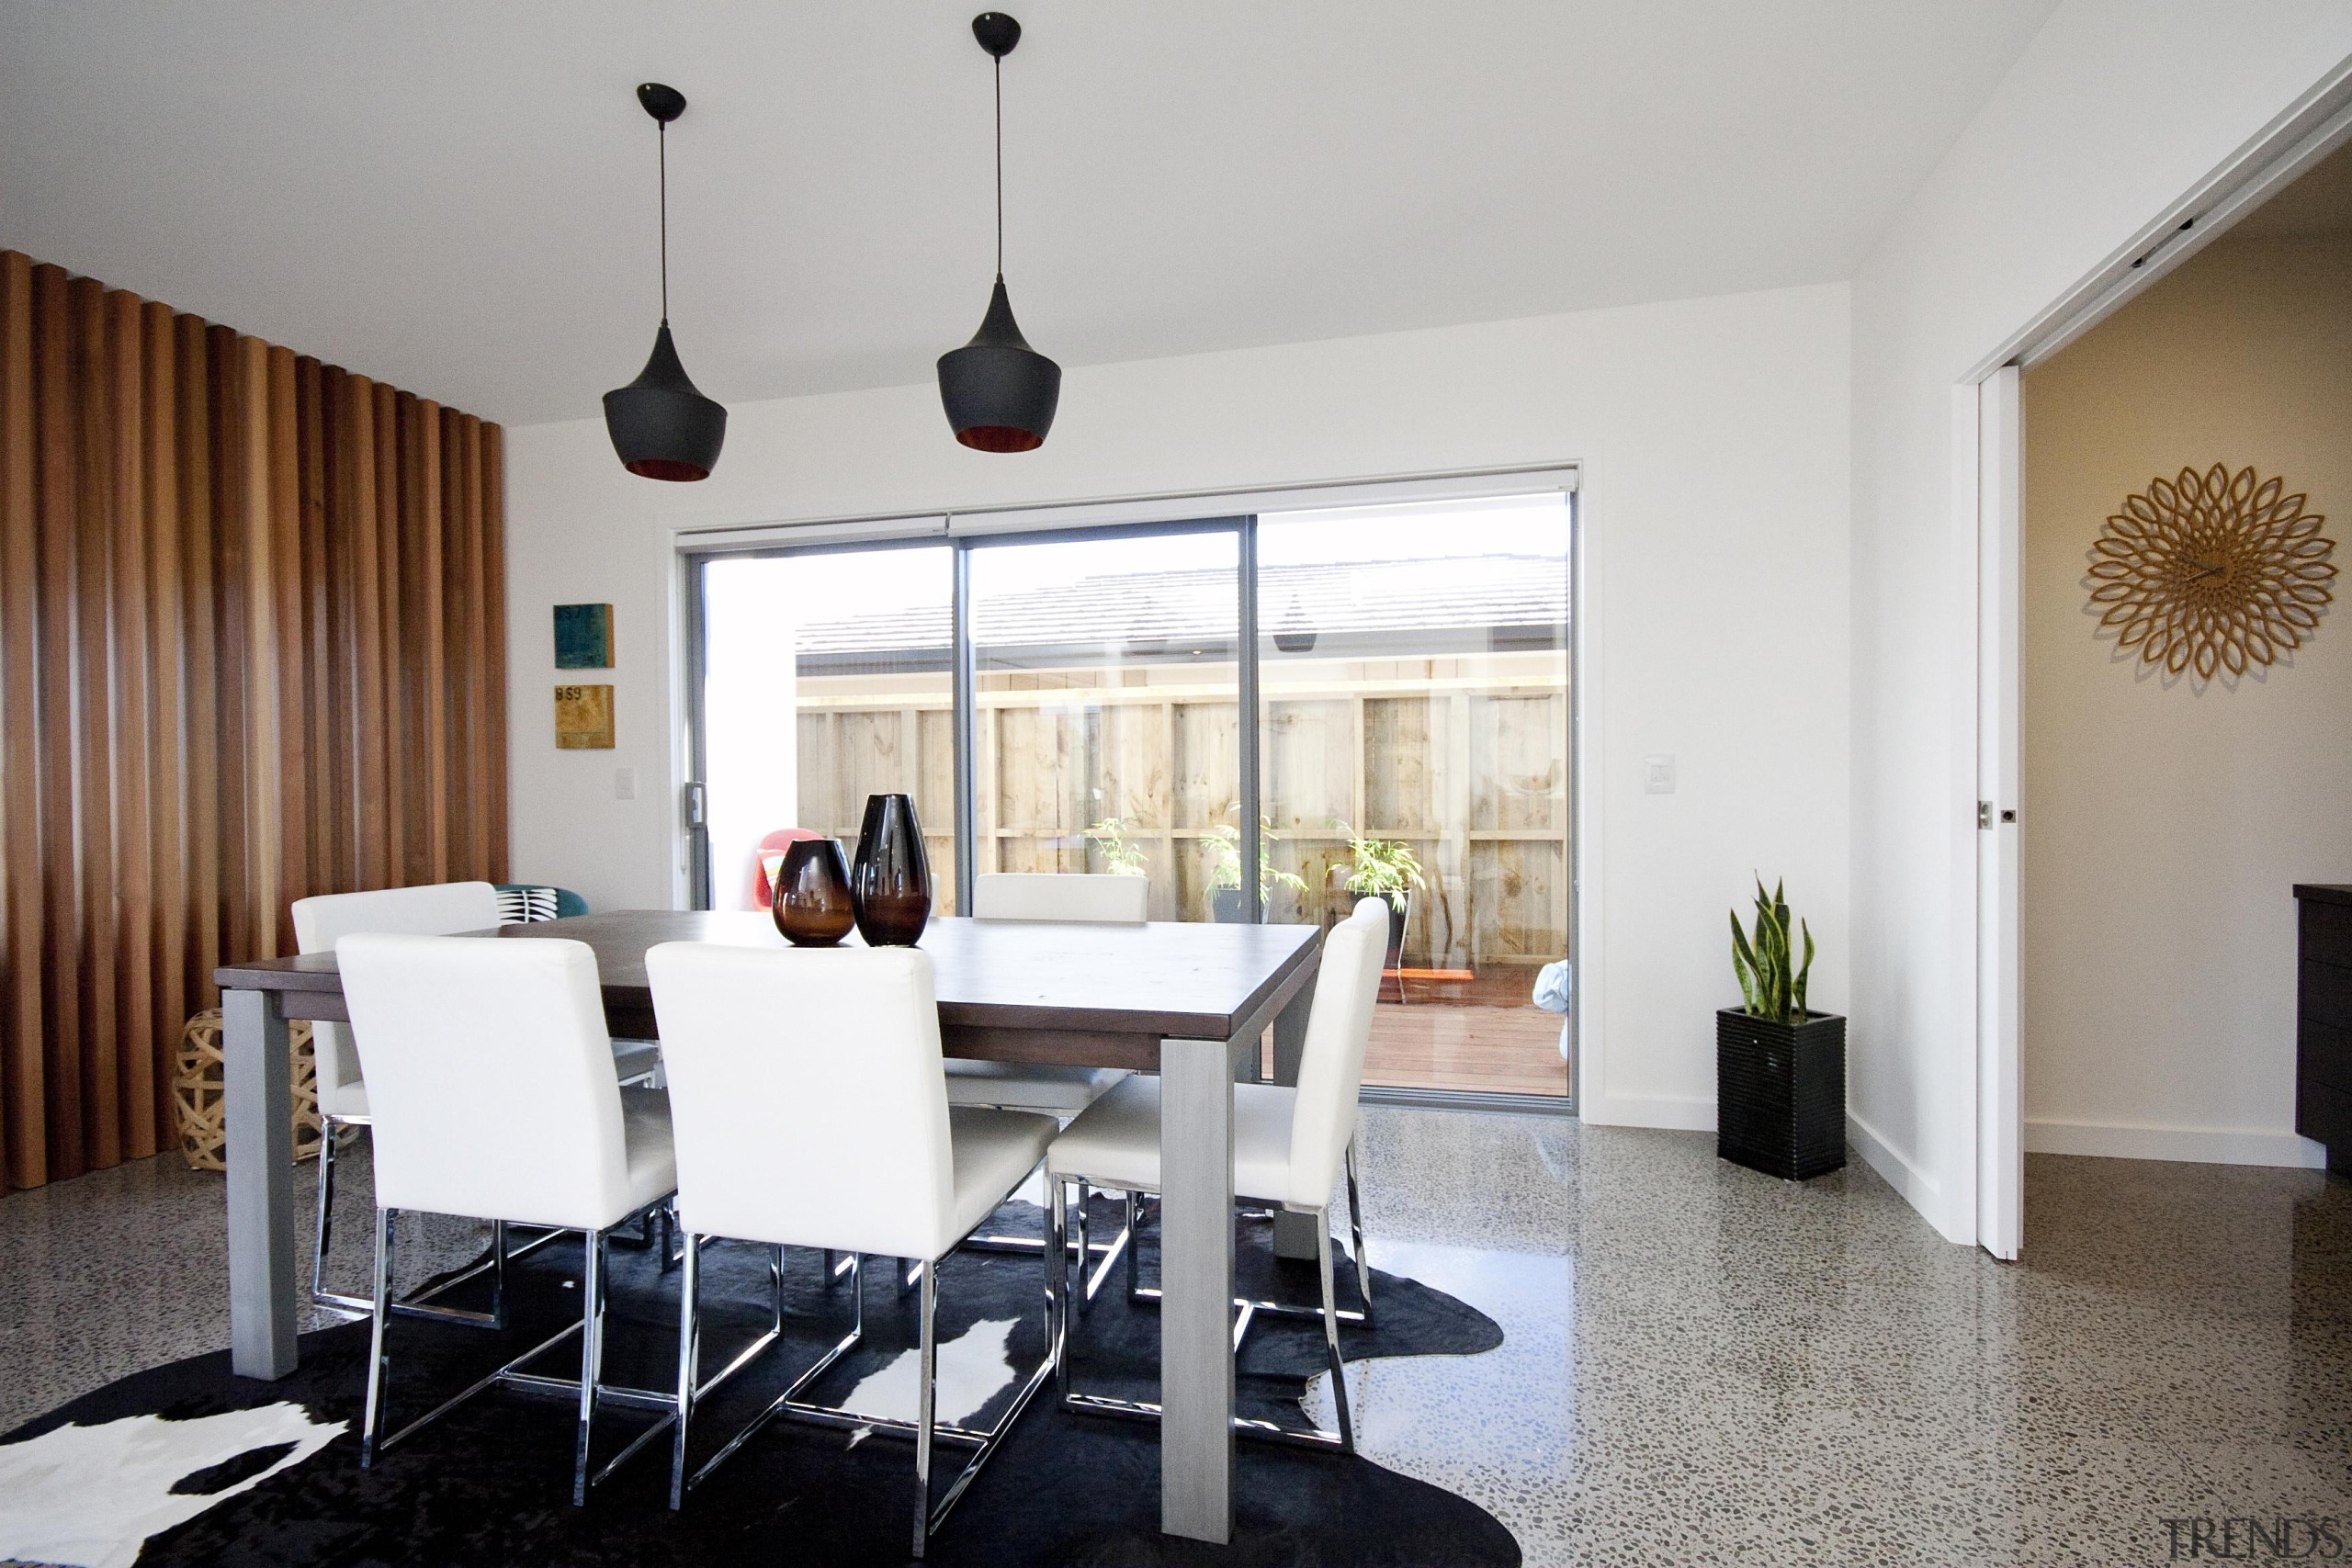 Dining room with polished concrete floor in a apartment, chair, dining room, furniture, interior design, living room, property, real estate, room, table, gray